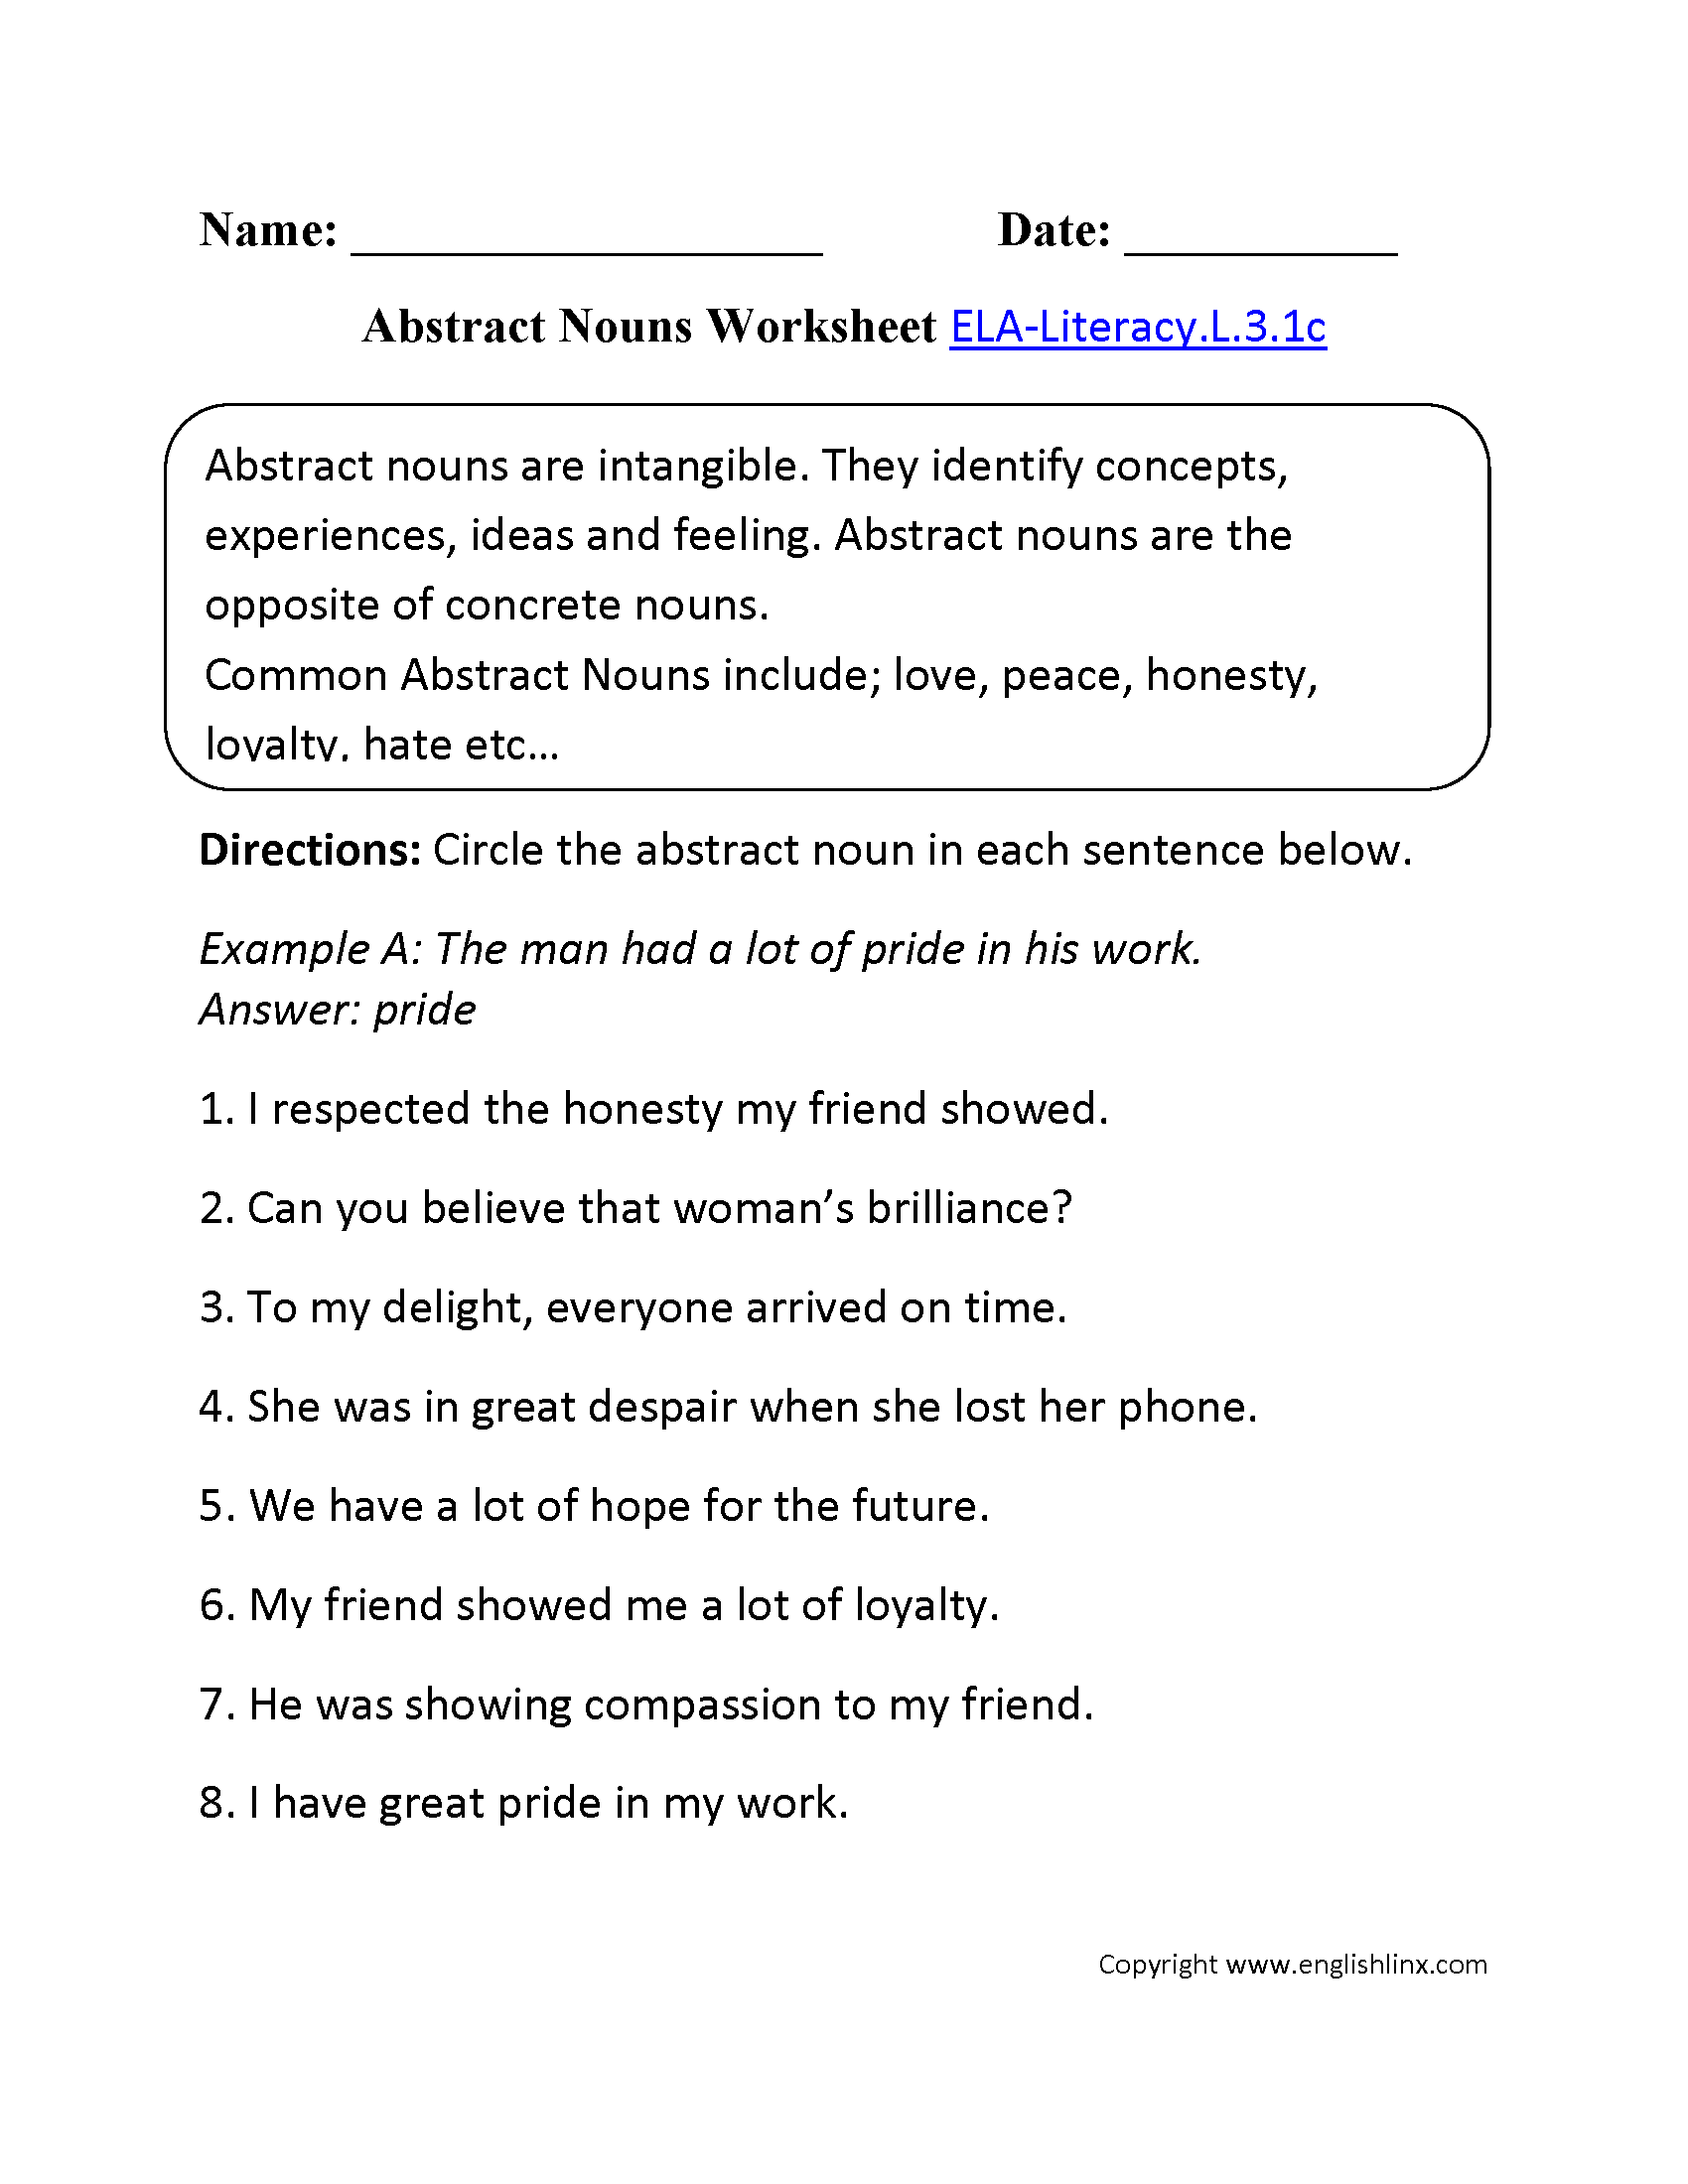 worksheet Noun Verb Worksheet 78 best images about l 3 1 on pinterest